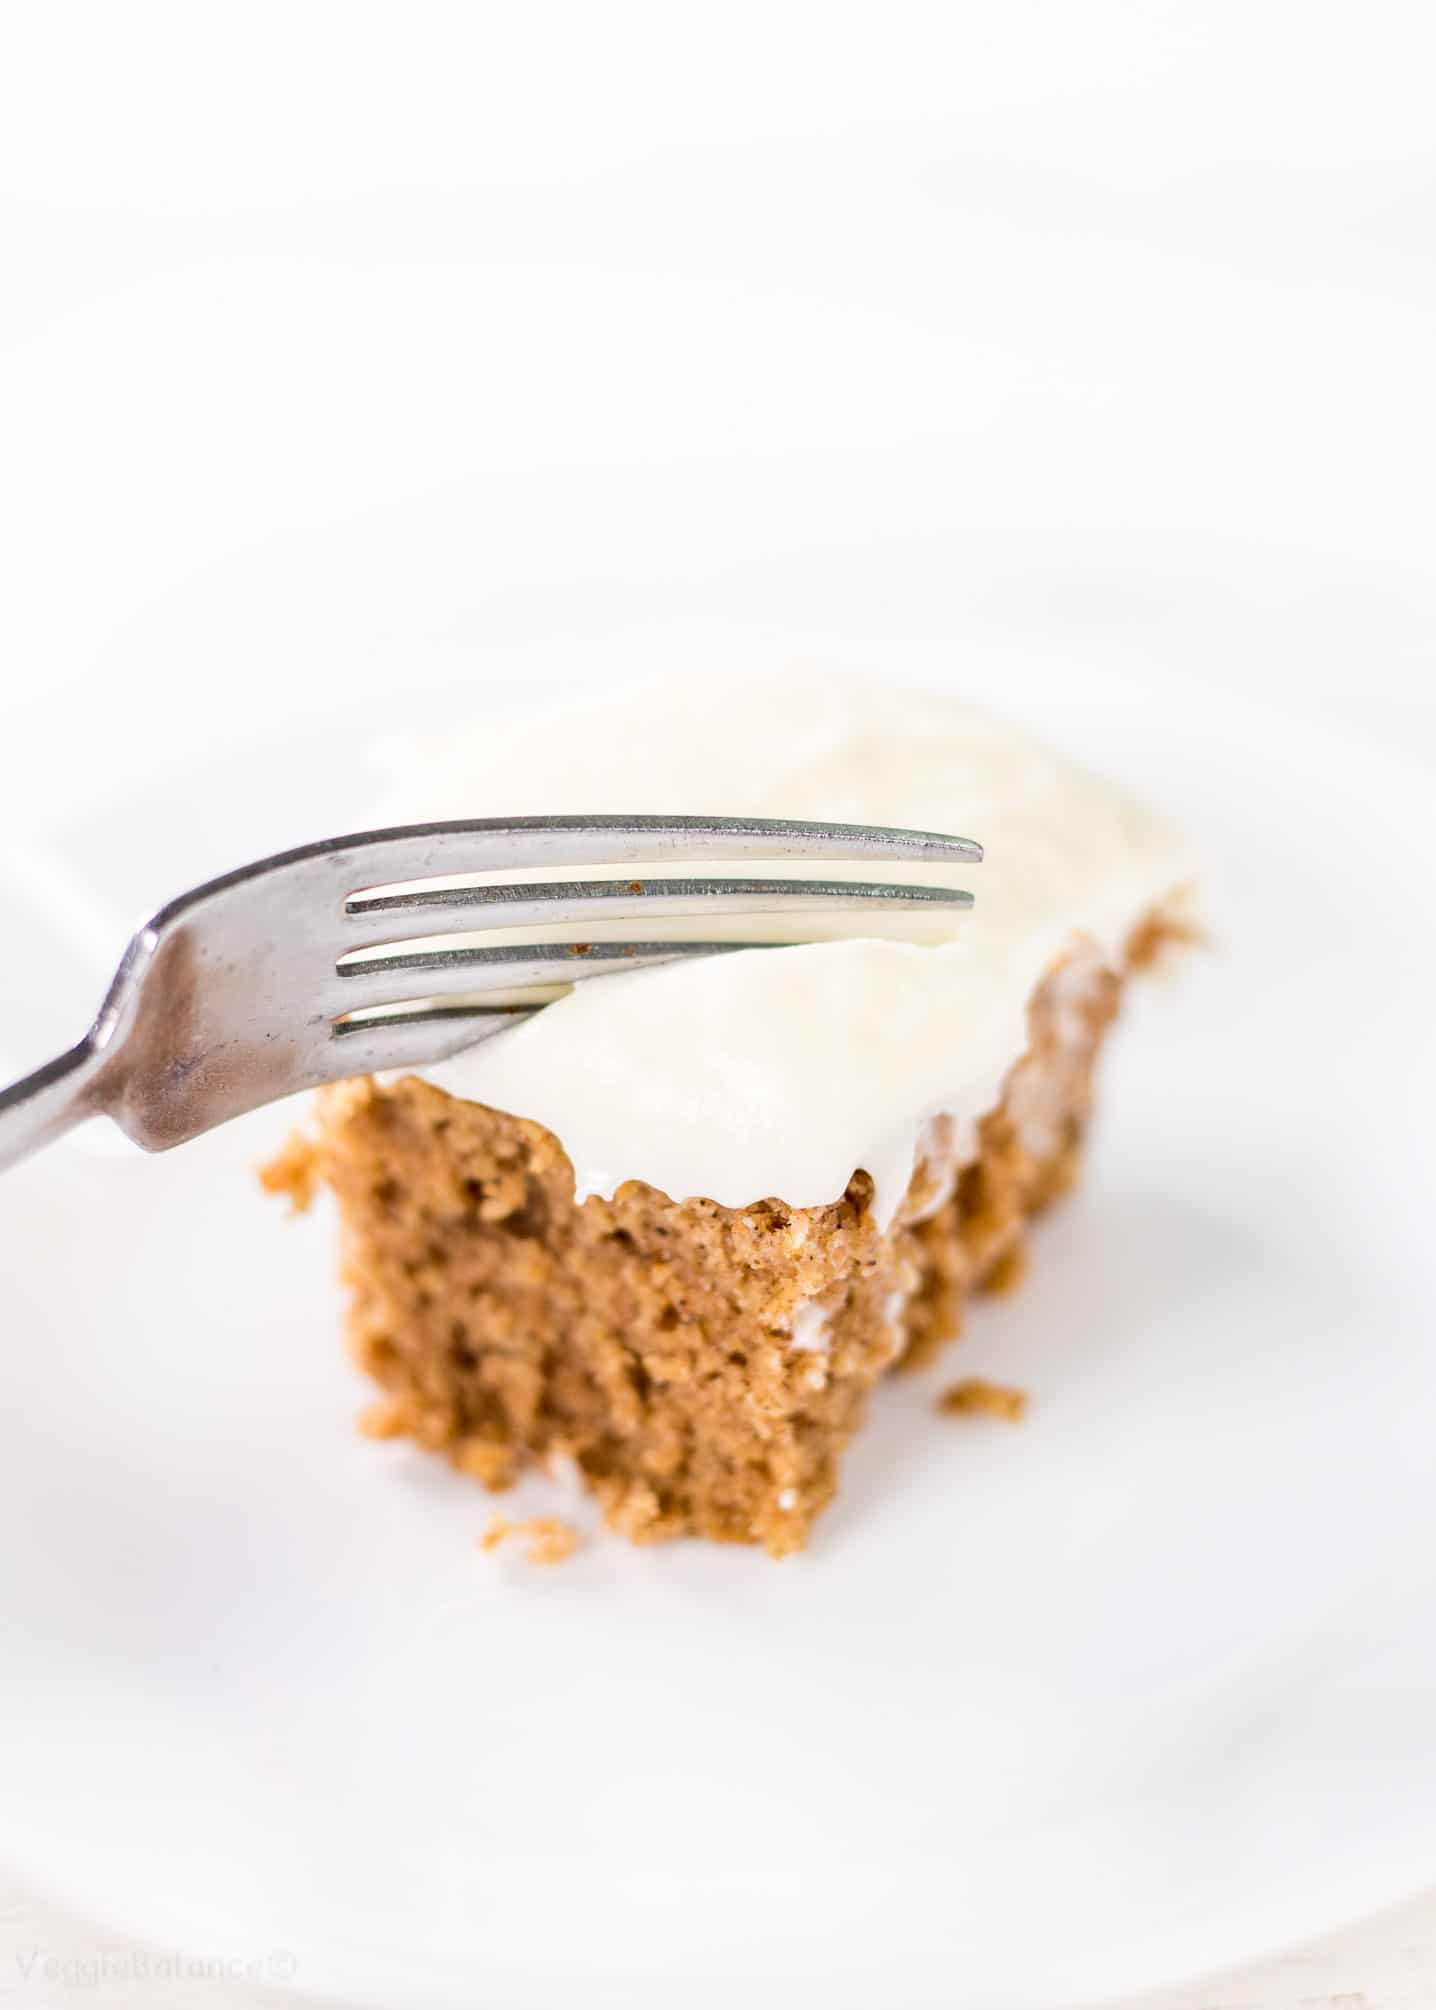 Applesauce Spice Cake Recipe with Cream Cheese Frosting